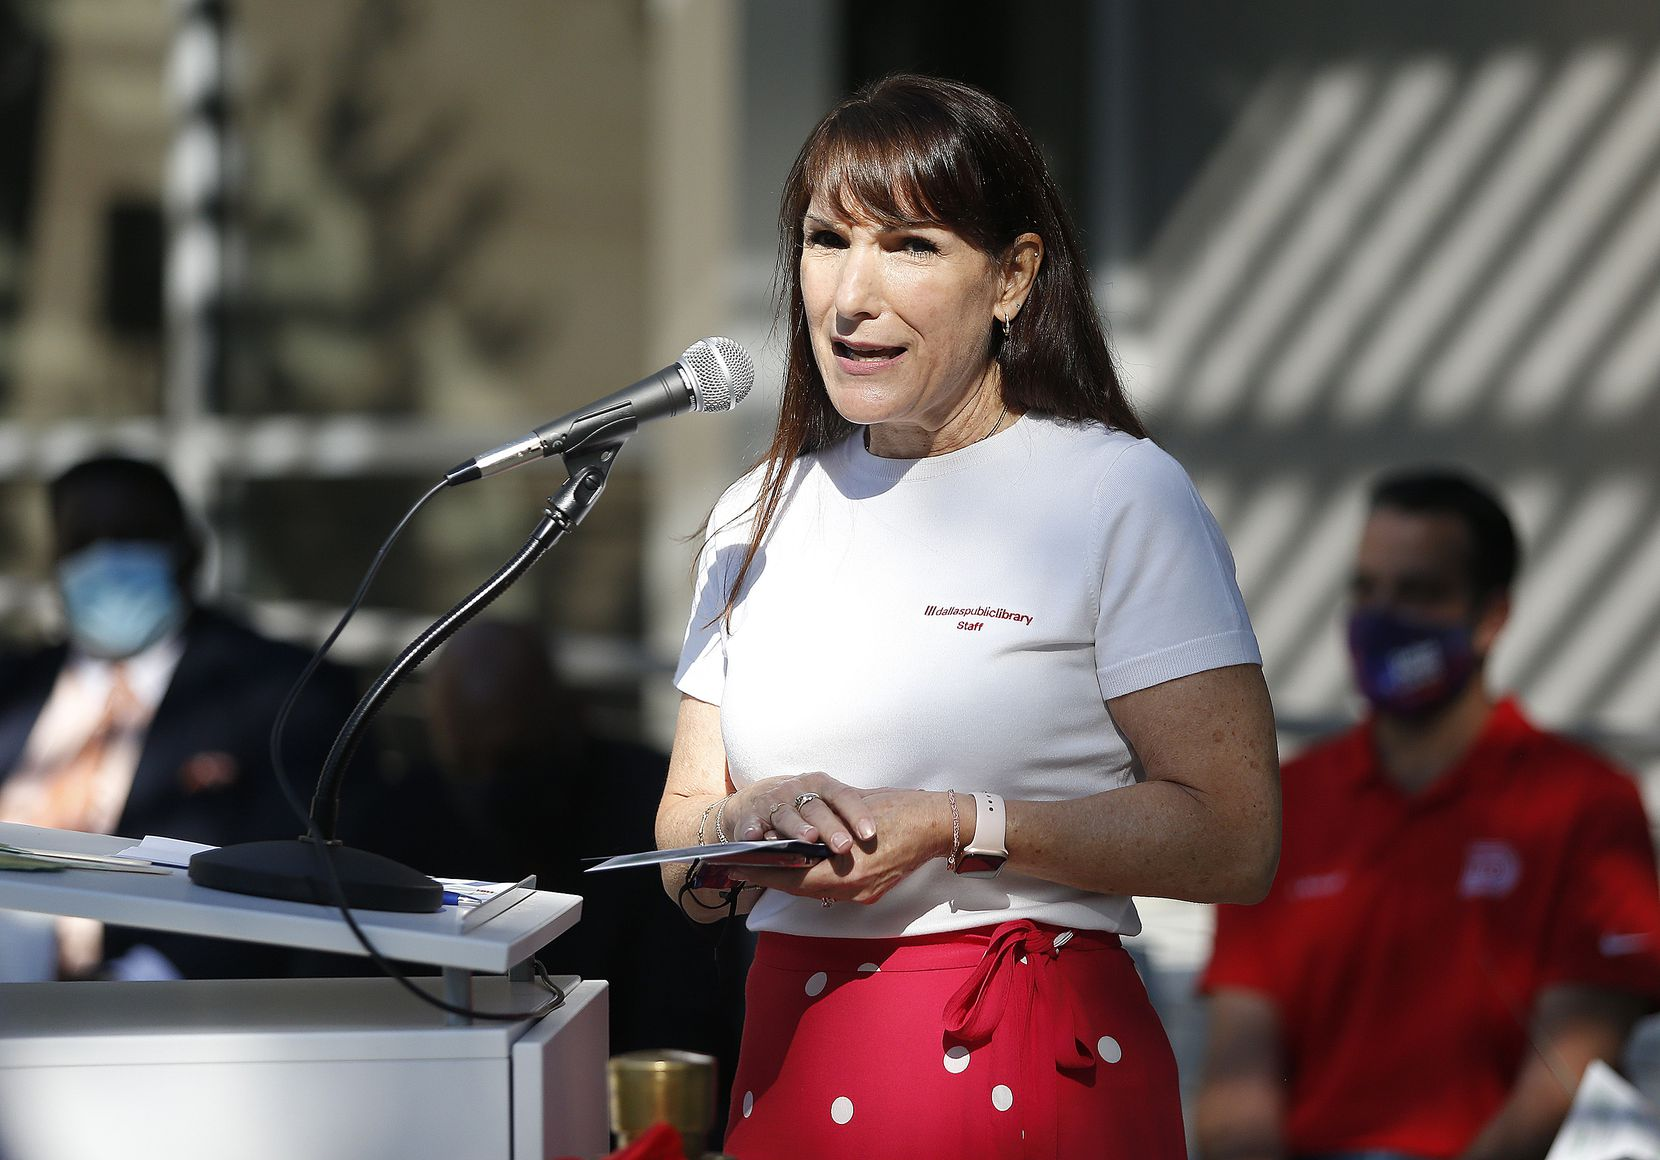 Jo Giudice, the city's library director, spoke before the ribbon cutting at the new Forest Green branch of the Dallas Public Library on Sept. 25.